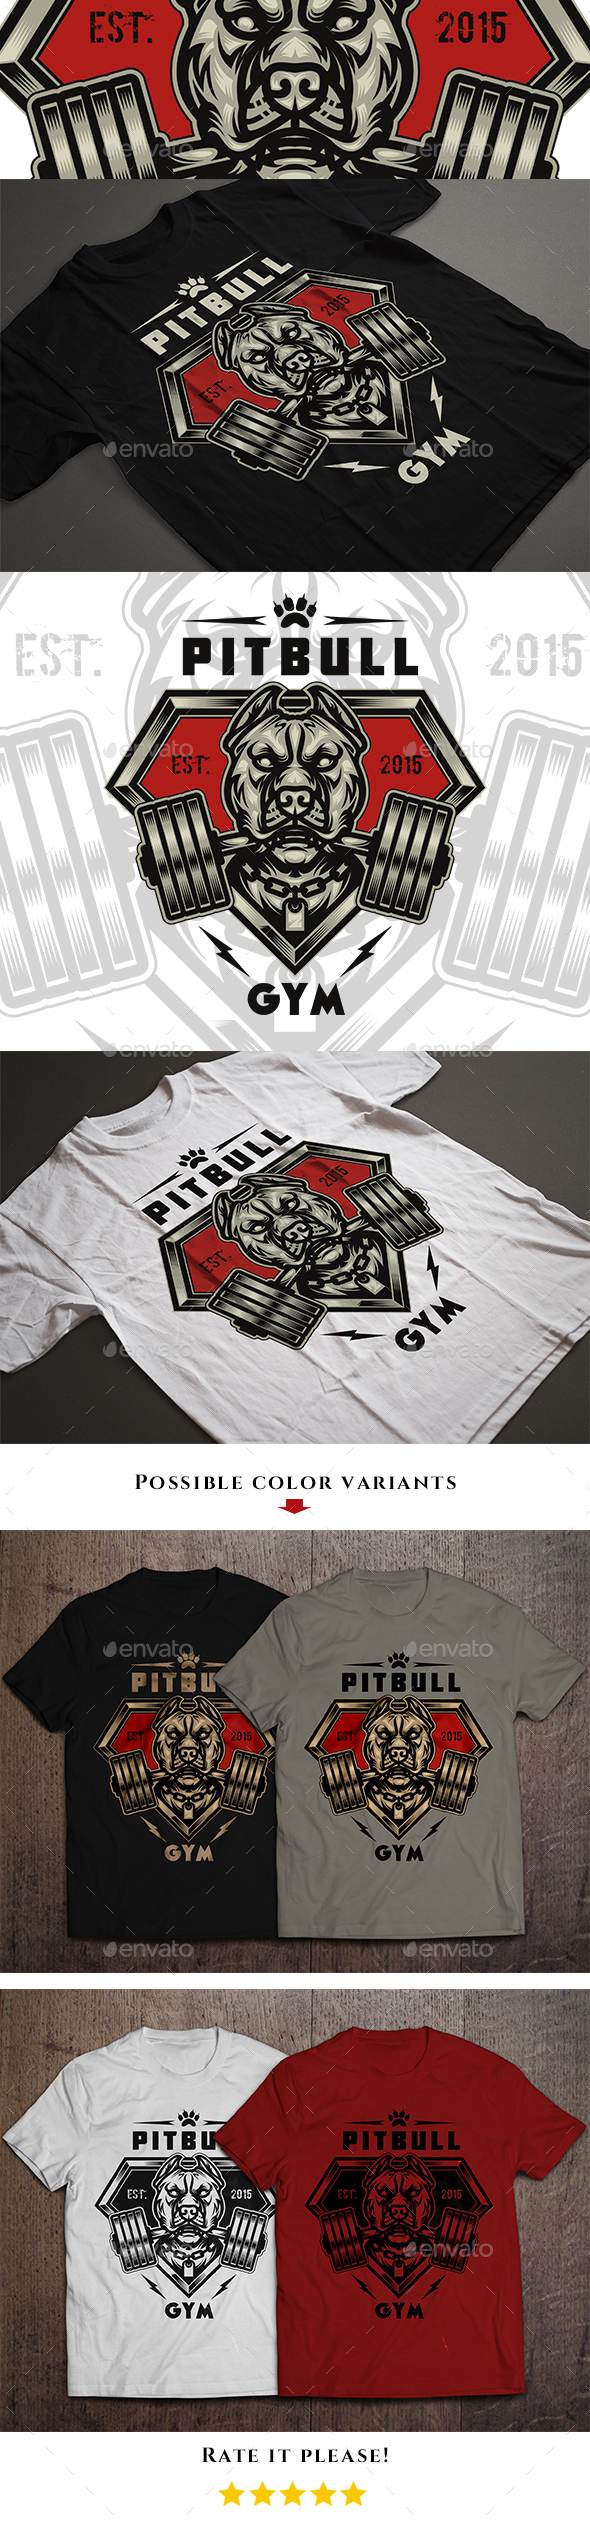 Pitbull Gym T-shirt Design - Sports & Teams T-Shirts